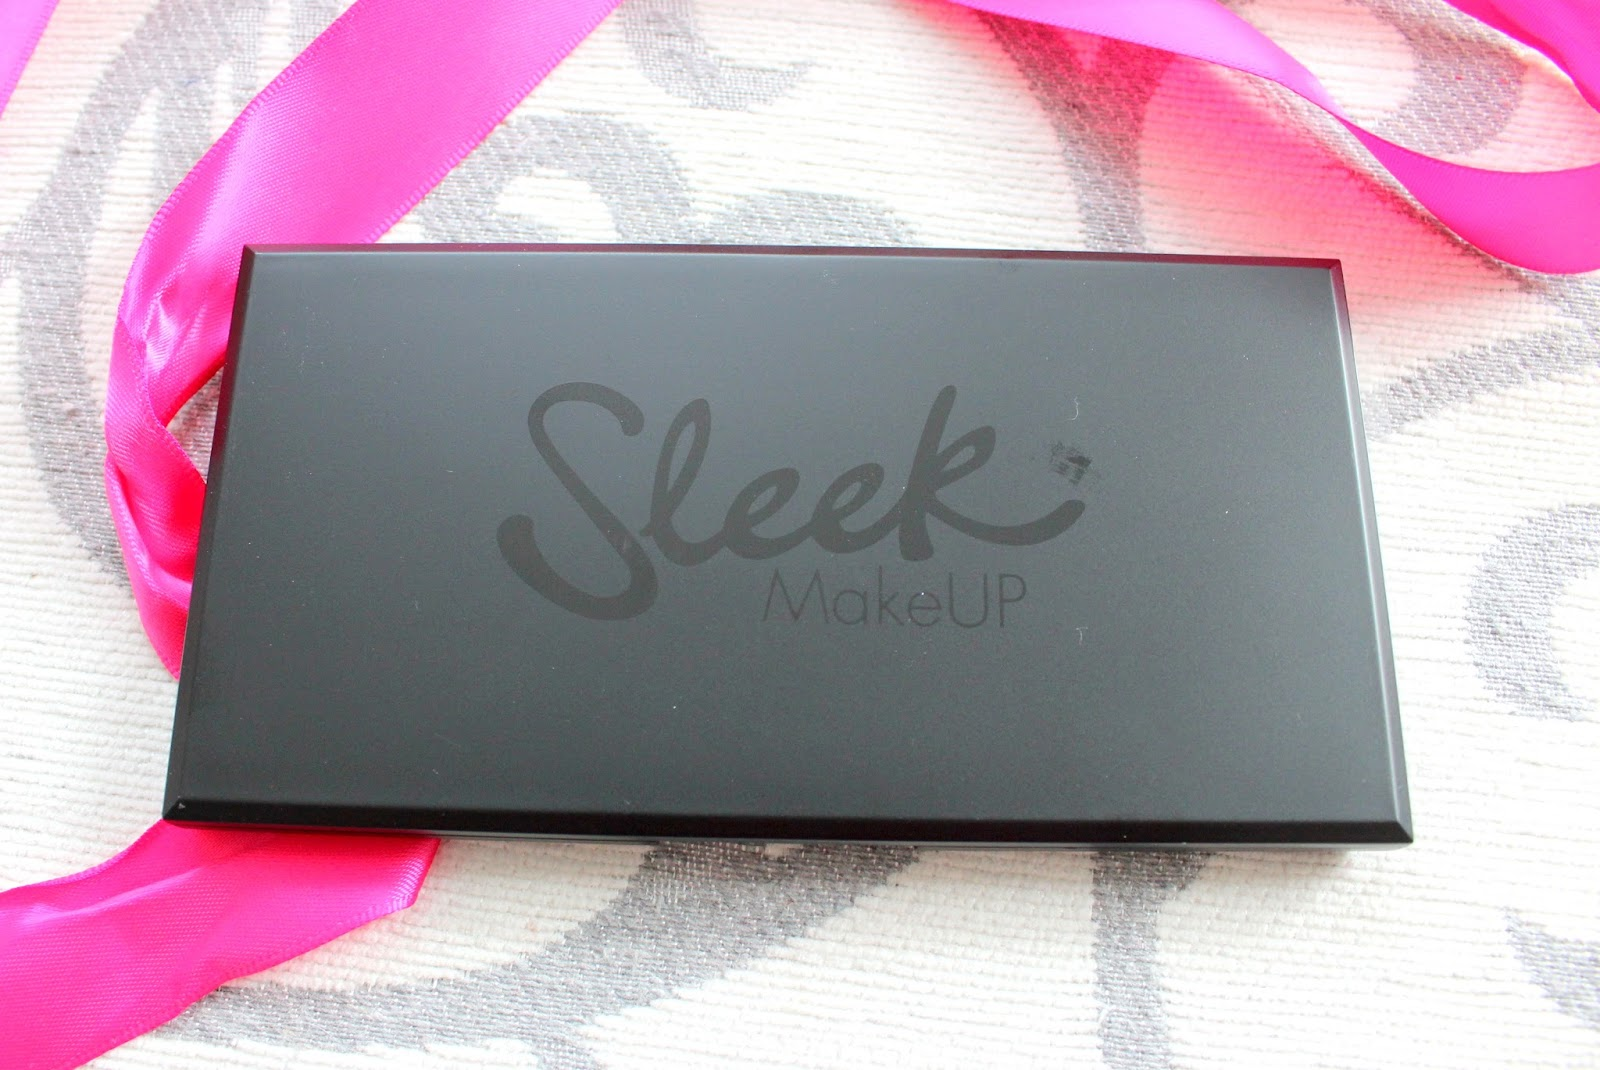 Beauty Products by sleek make up